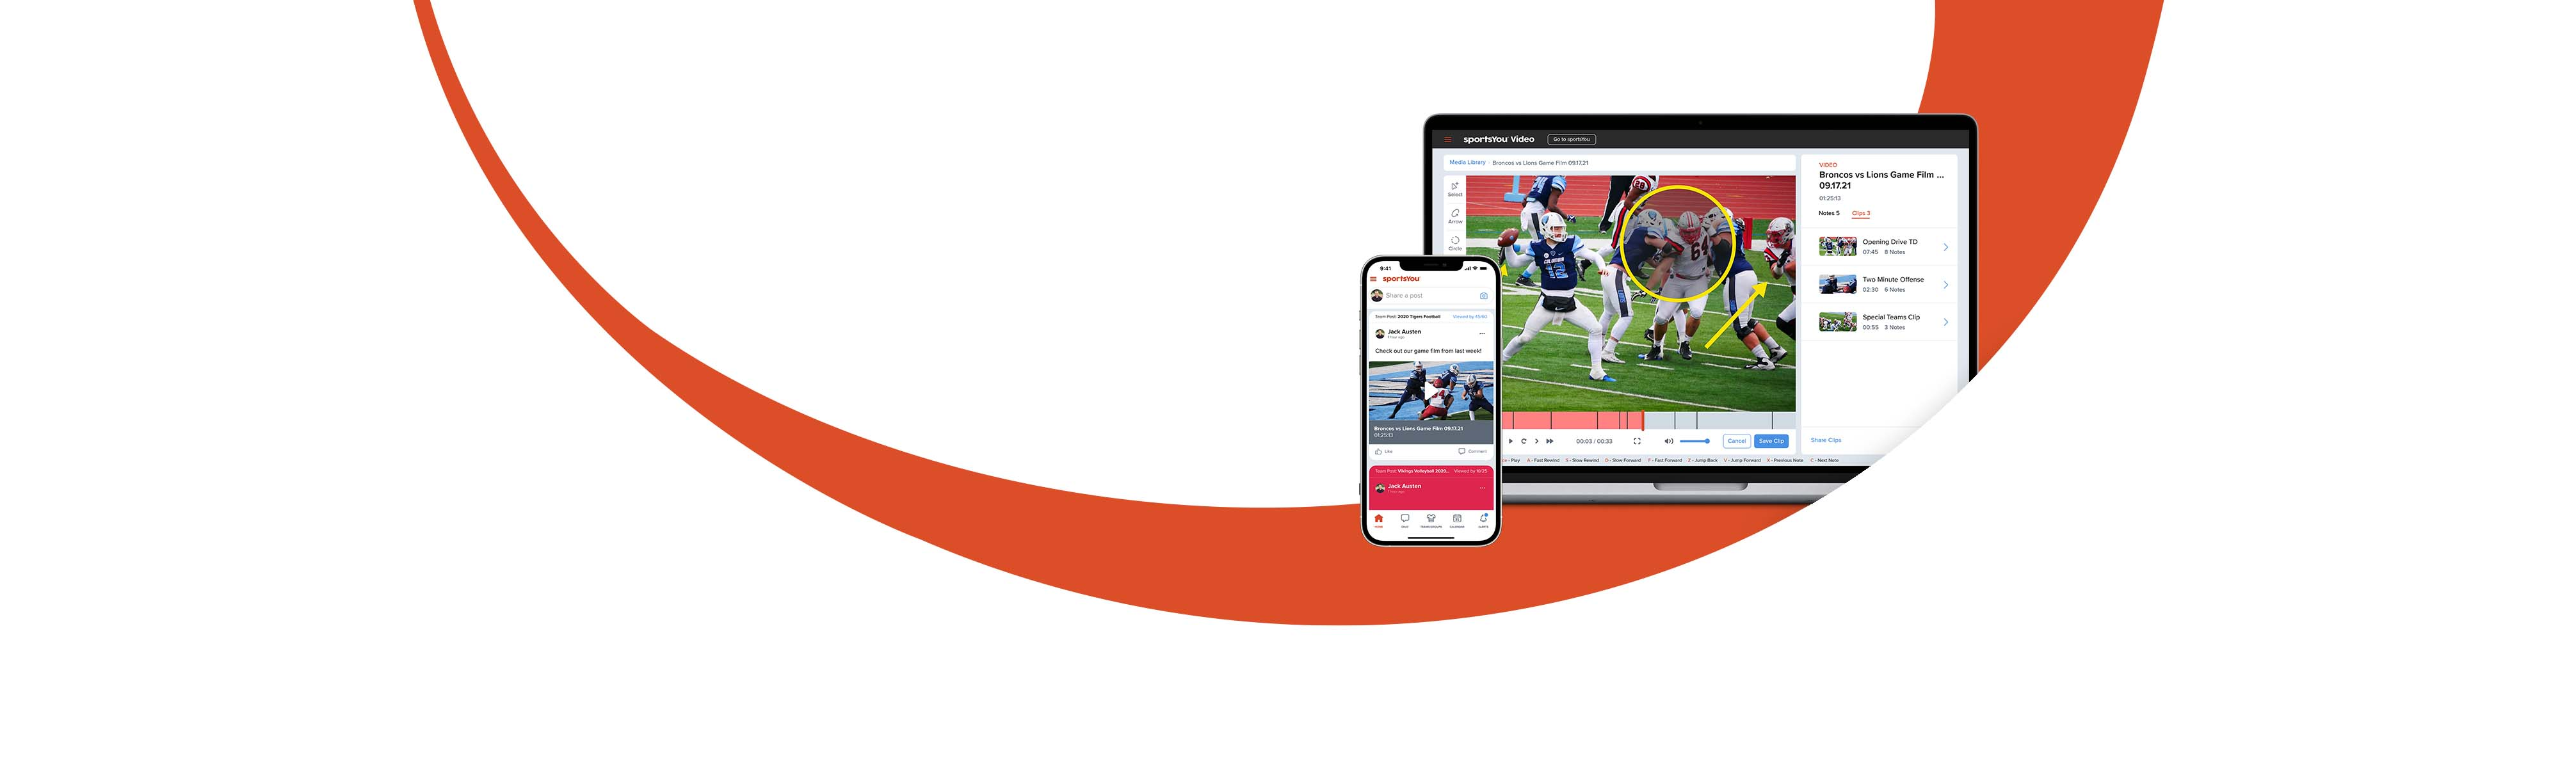 sportsYou and sportsYou Video apps on mobile and desktop.